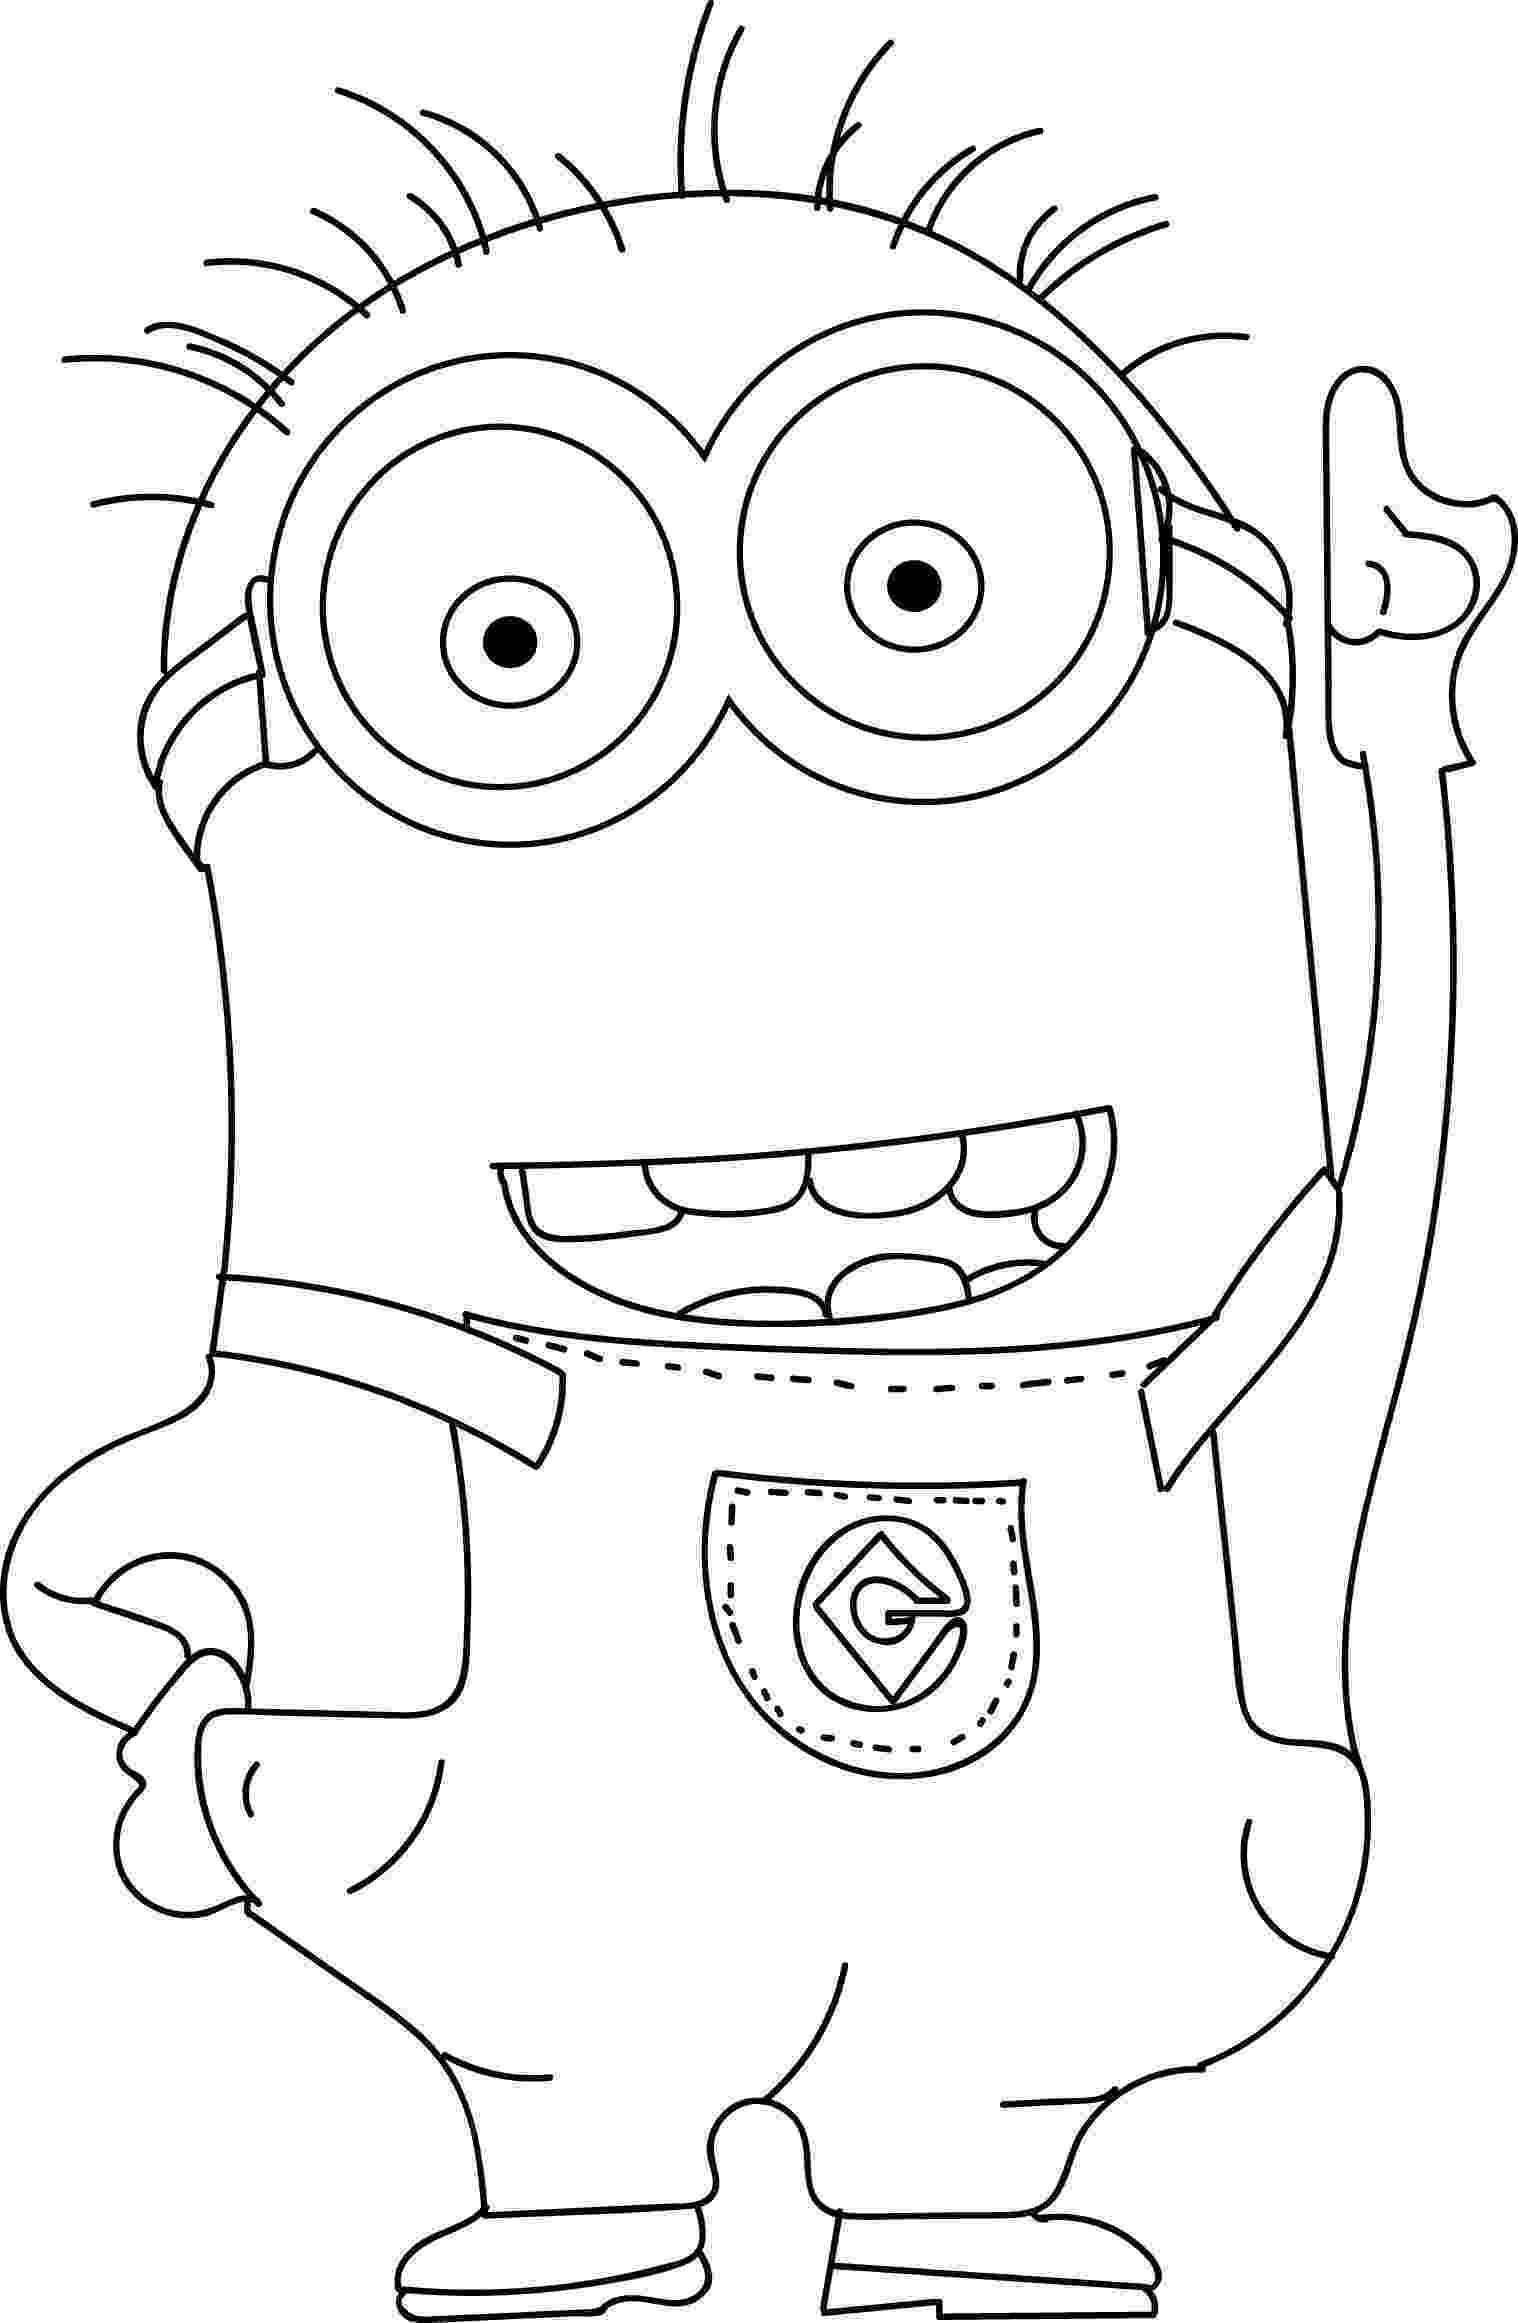 pictures of minions to color pictures of minions to color of color minions to pictures